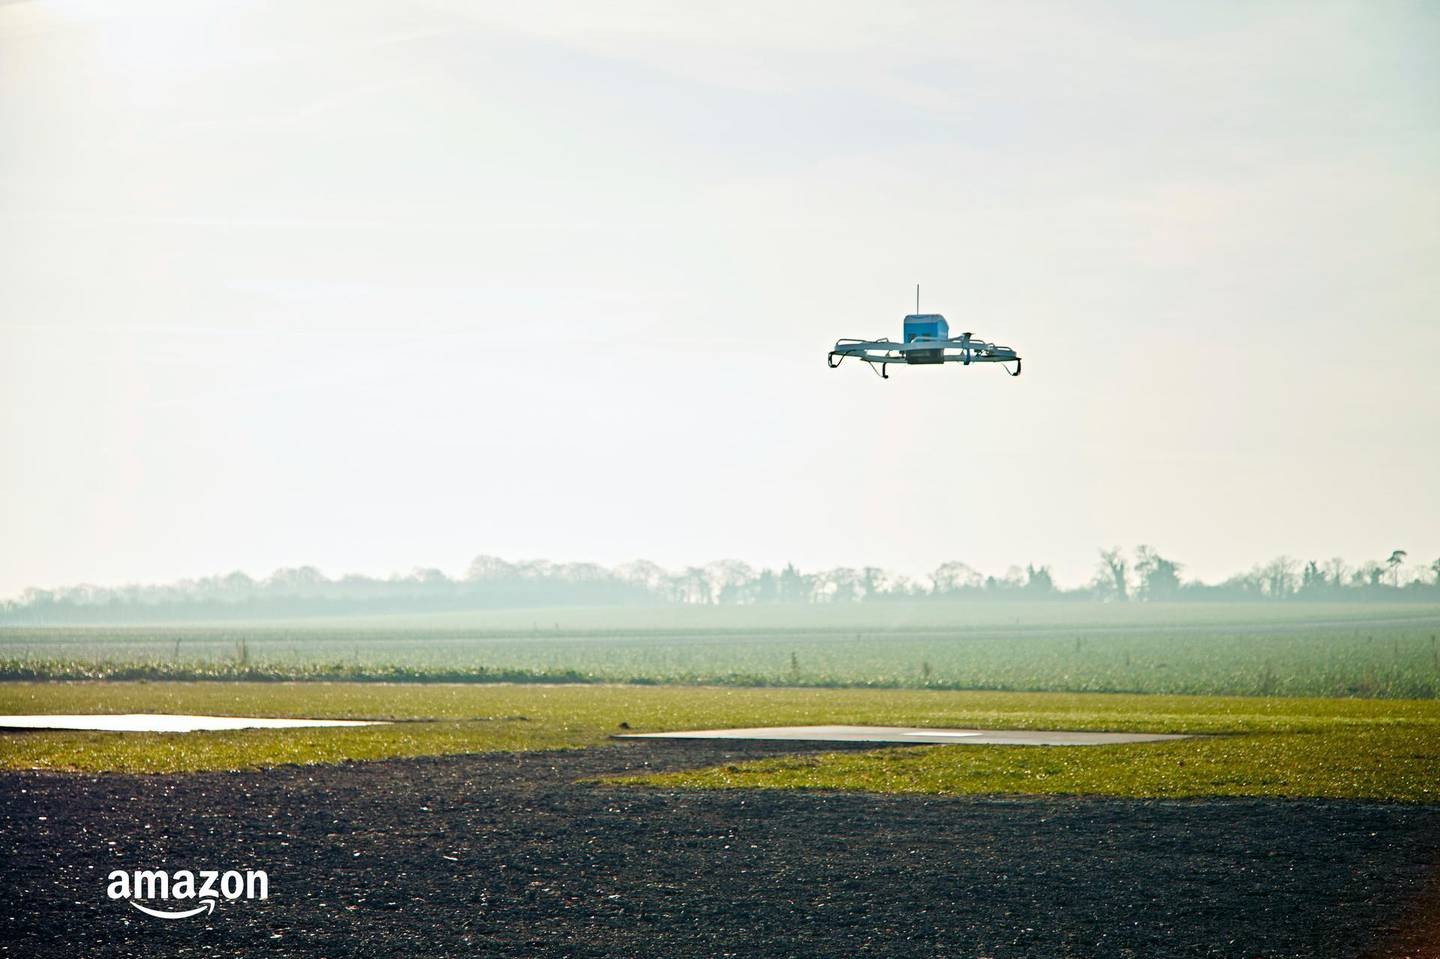 """FILE- This Dec. 7, 2016, file photo provided by Amazon shows an Amazon Prime Air drone in Cambridgeshire, United Kingdom. Amazon founder and CEO Jeff Bezos might have underestimated regulatory obstacles and privacy concerns when he told CBS' """"60 Minutes"""" in December 2013 that his company would be making drone-borne deliveries within five years. (Amazon via AP, File)"""